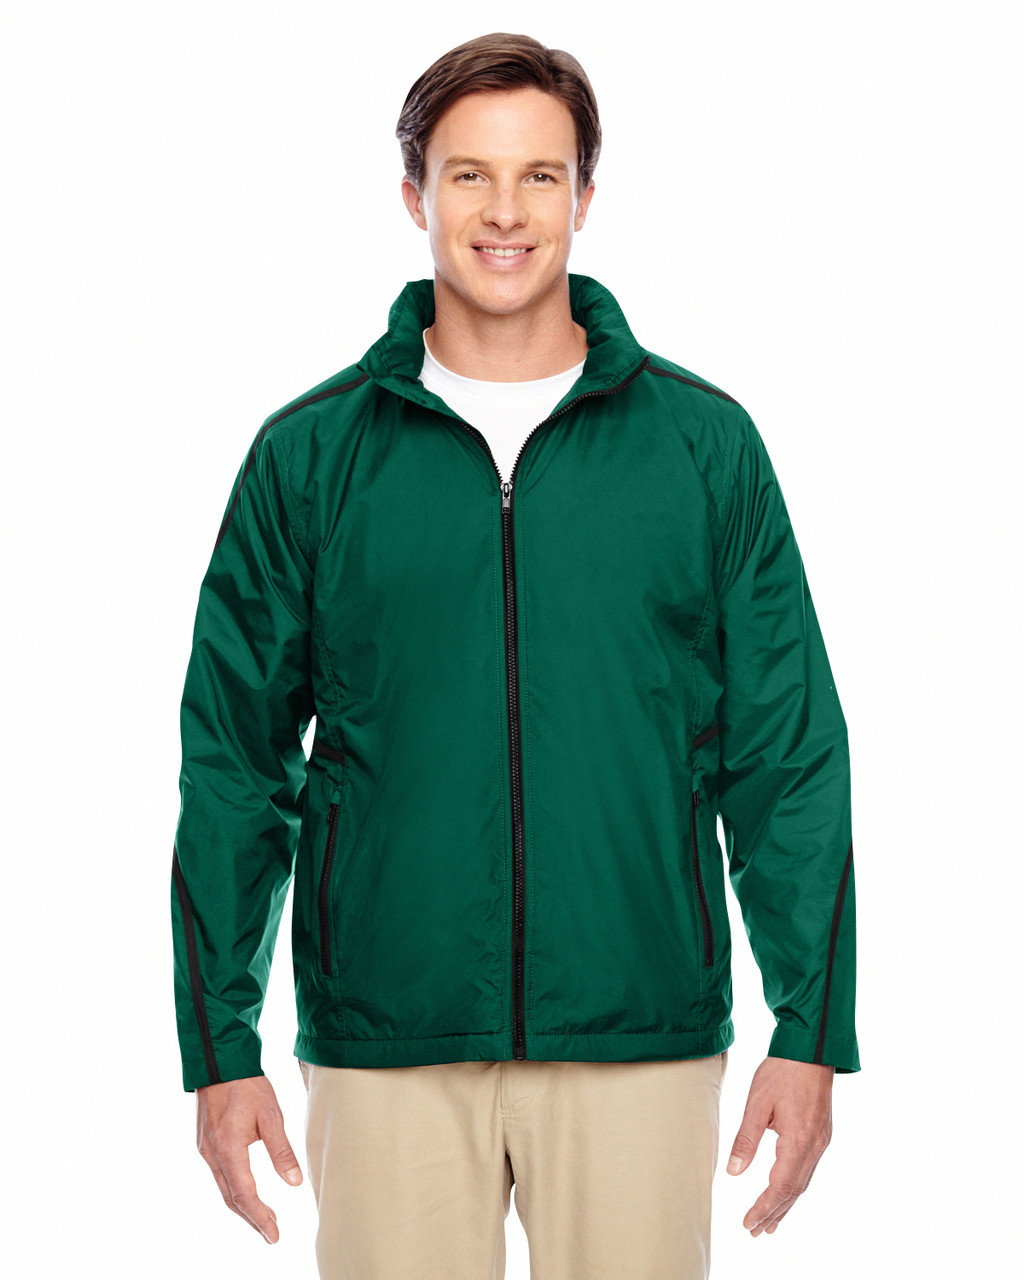 Sport Forest TT72 Team 365 Conquest Jacket with Fleece Lining